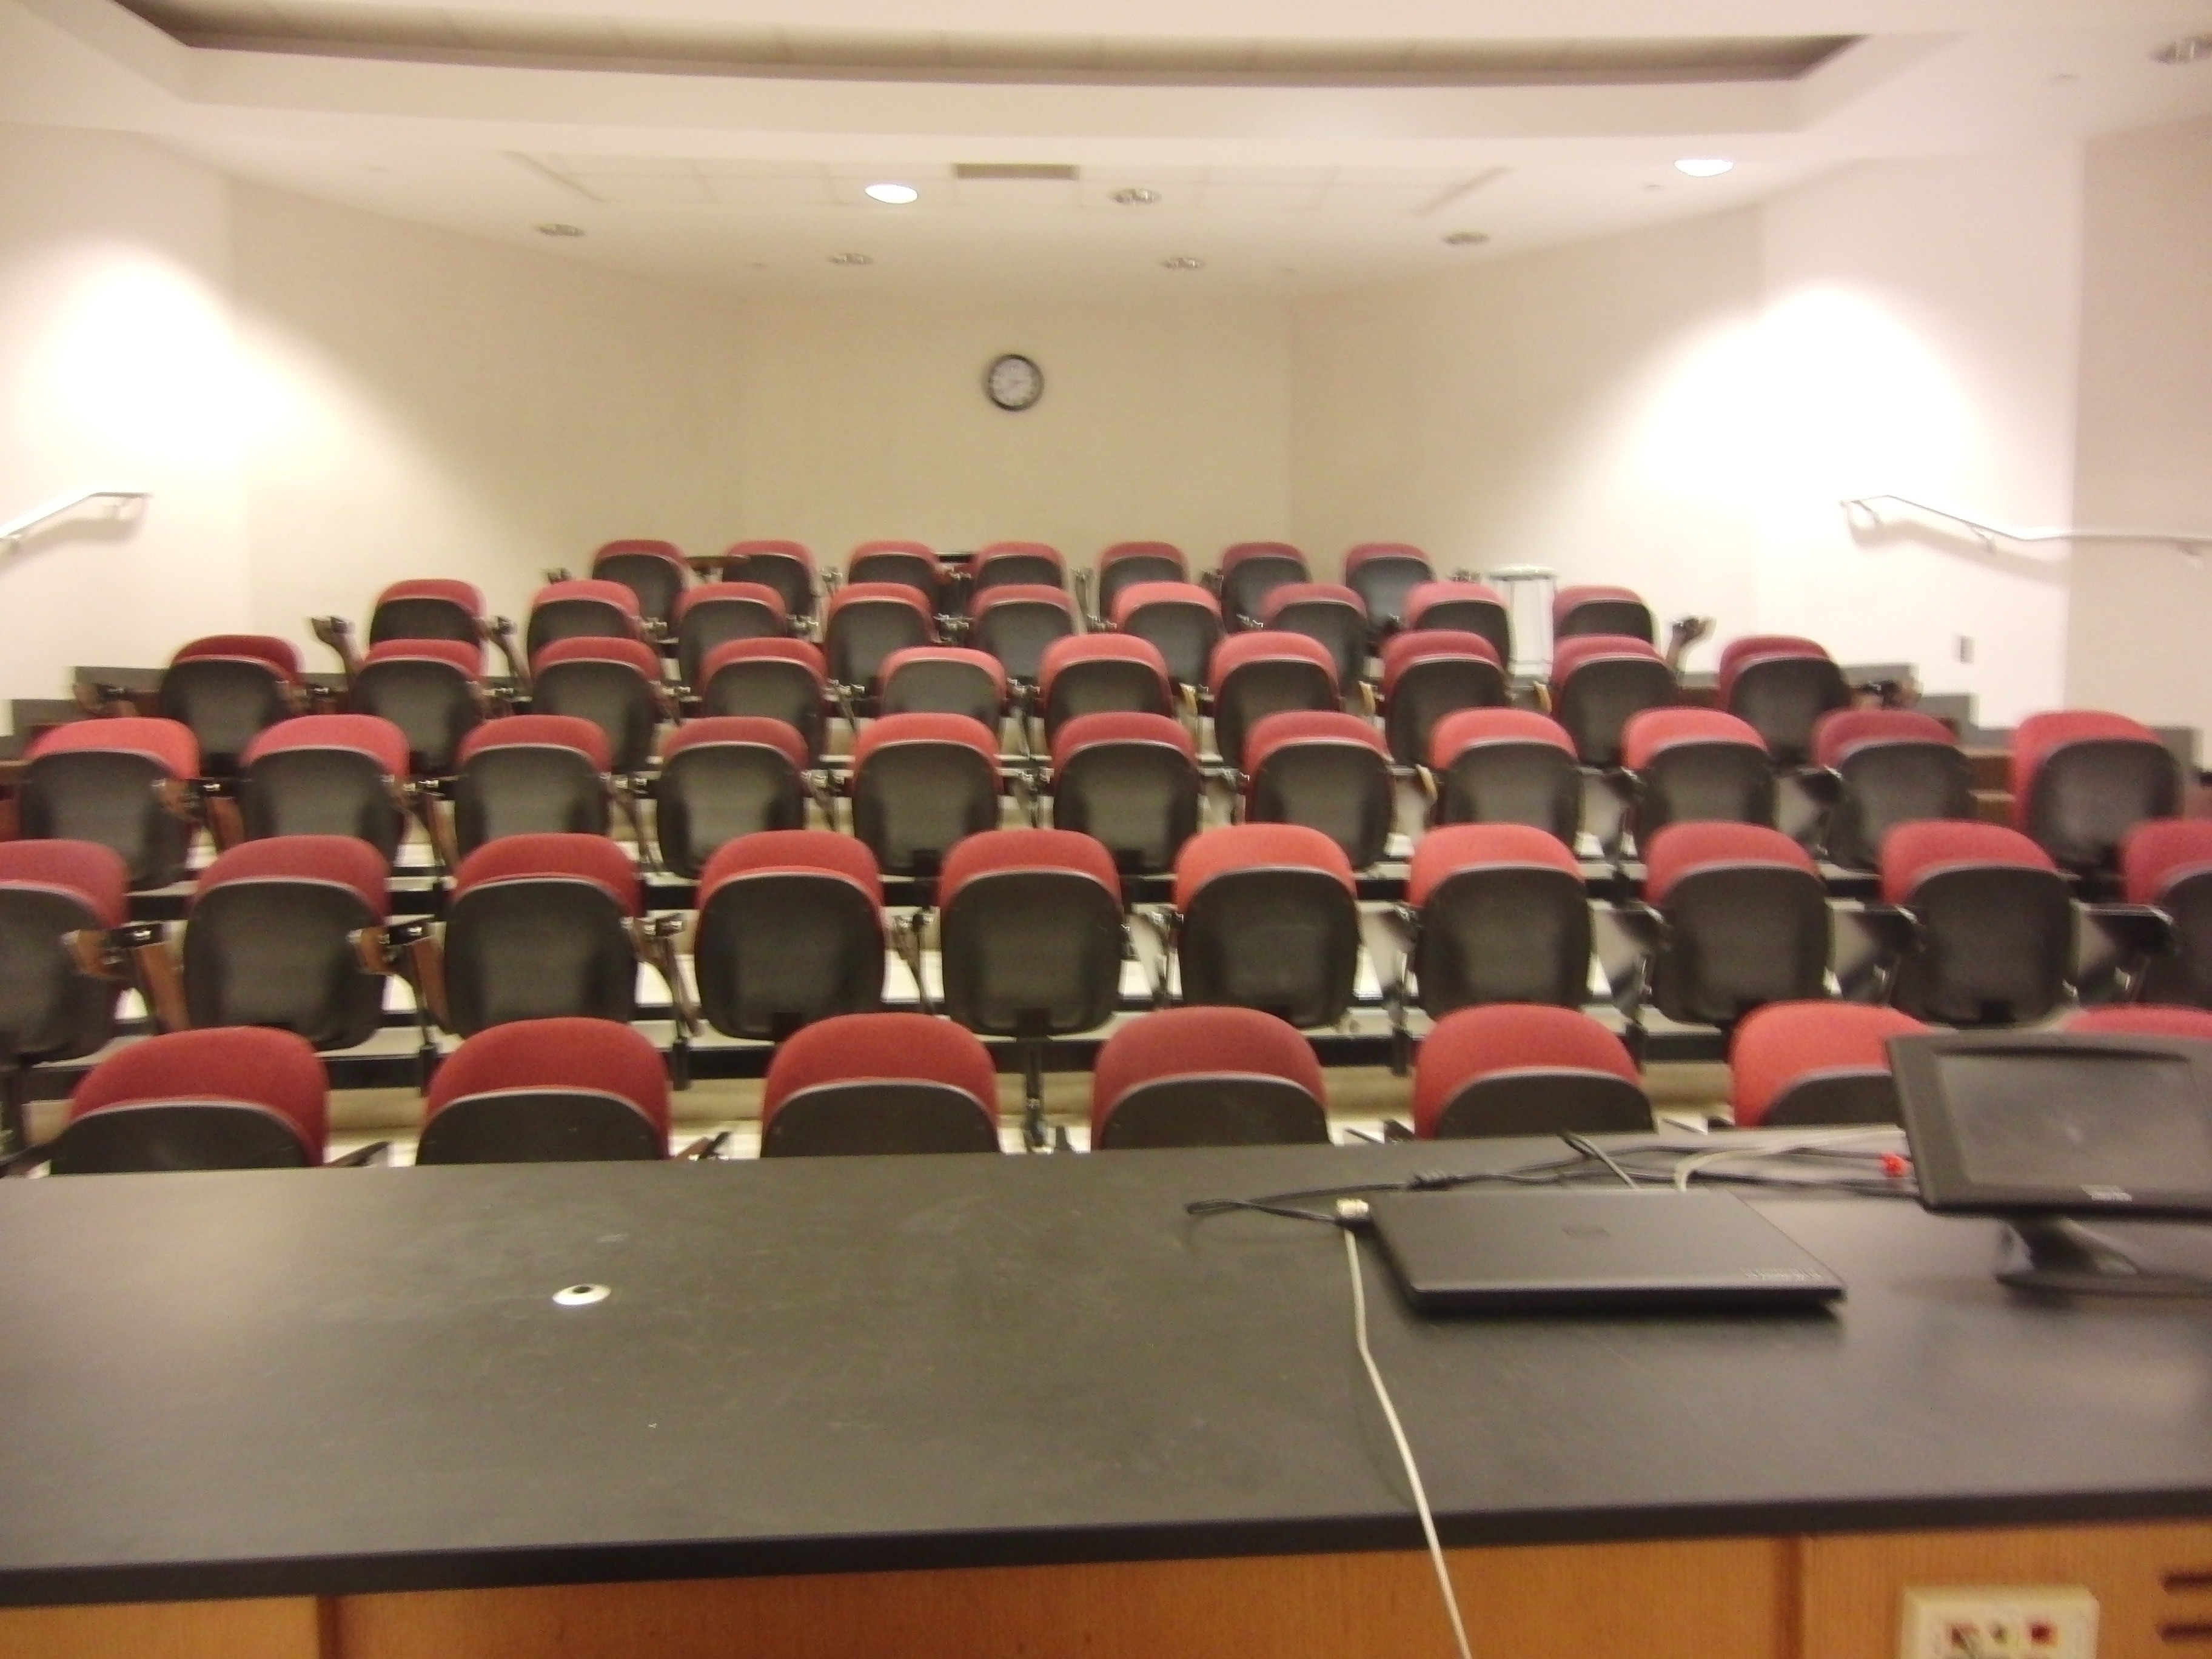 Photo of the lecture hall looking from the stage area out towards the seats